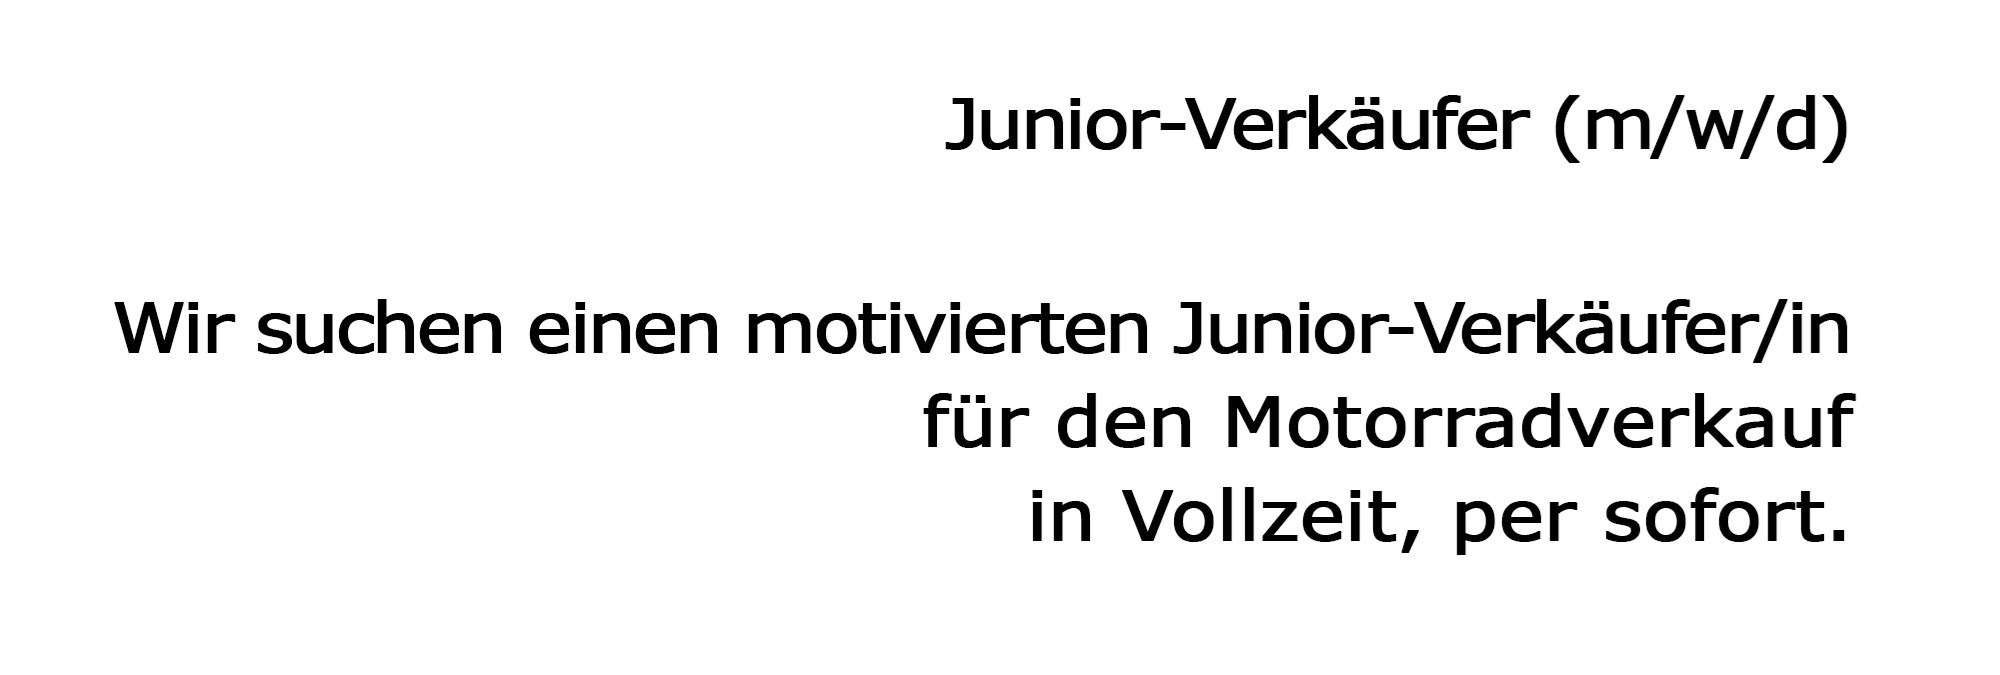 Junior-Verkäufer